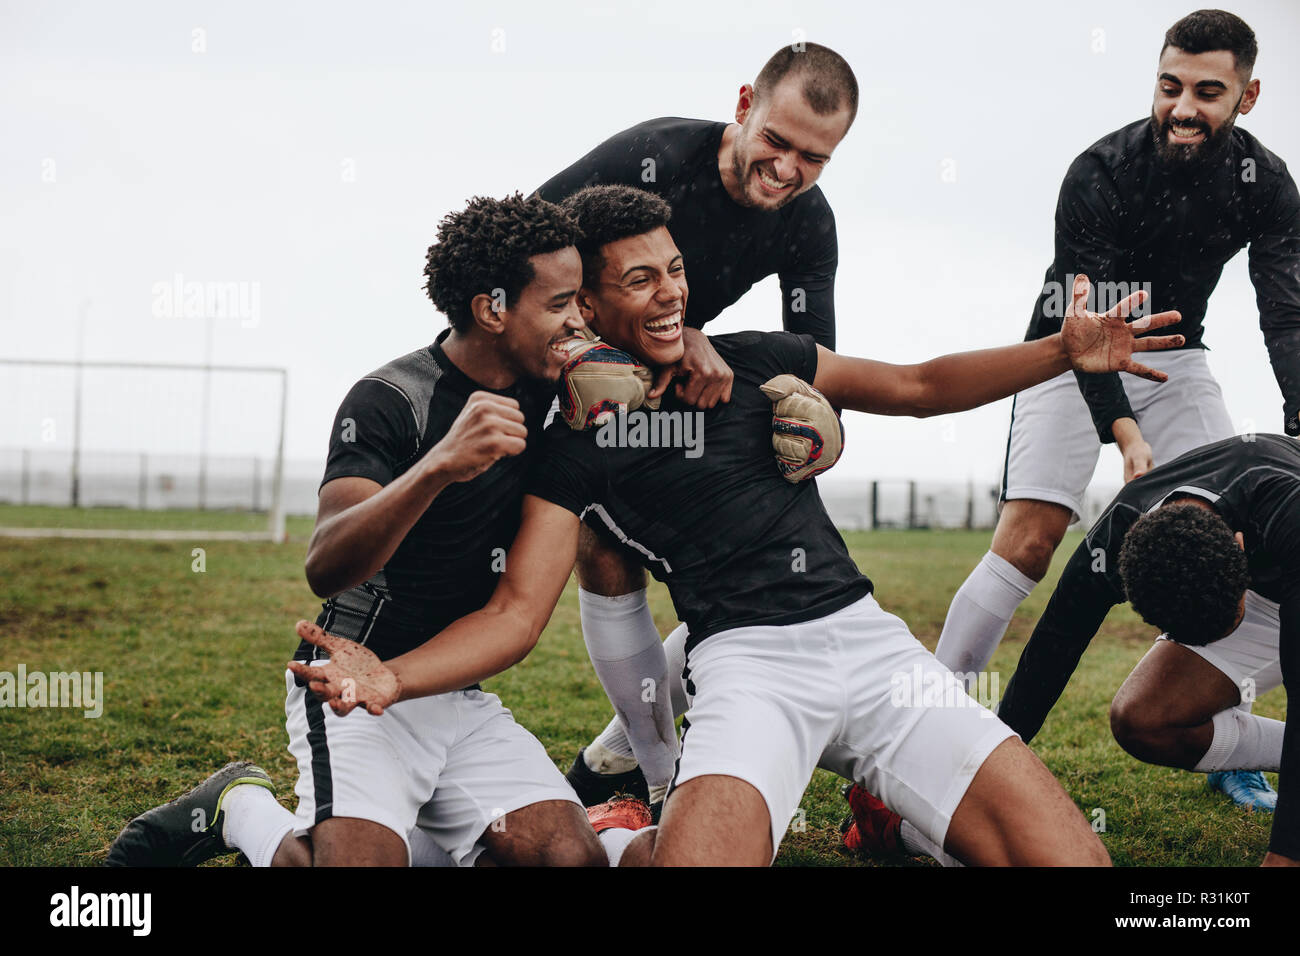 Football players celebrating success on the field. Happy footballer sitting on his knees with open arms after scoring a goal being cheered by his team - Stock Image